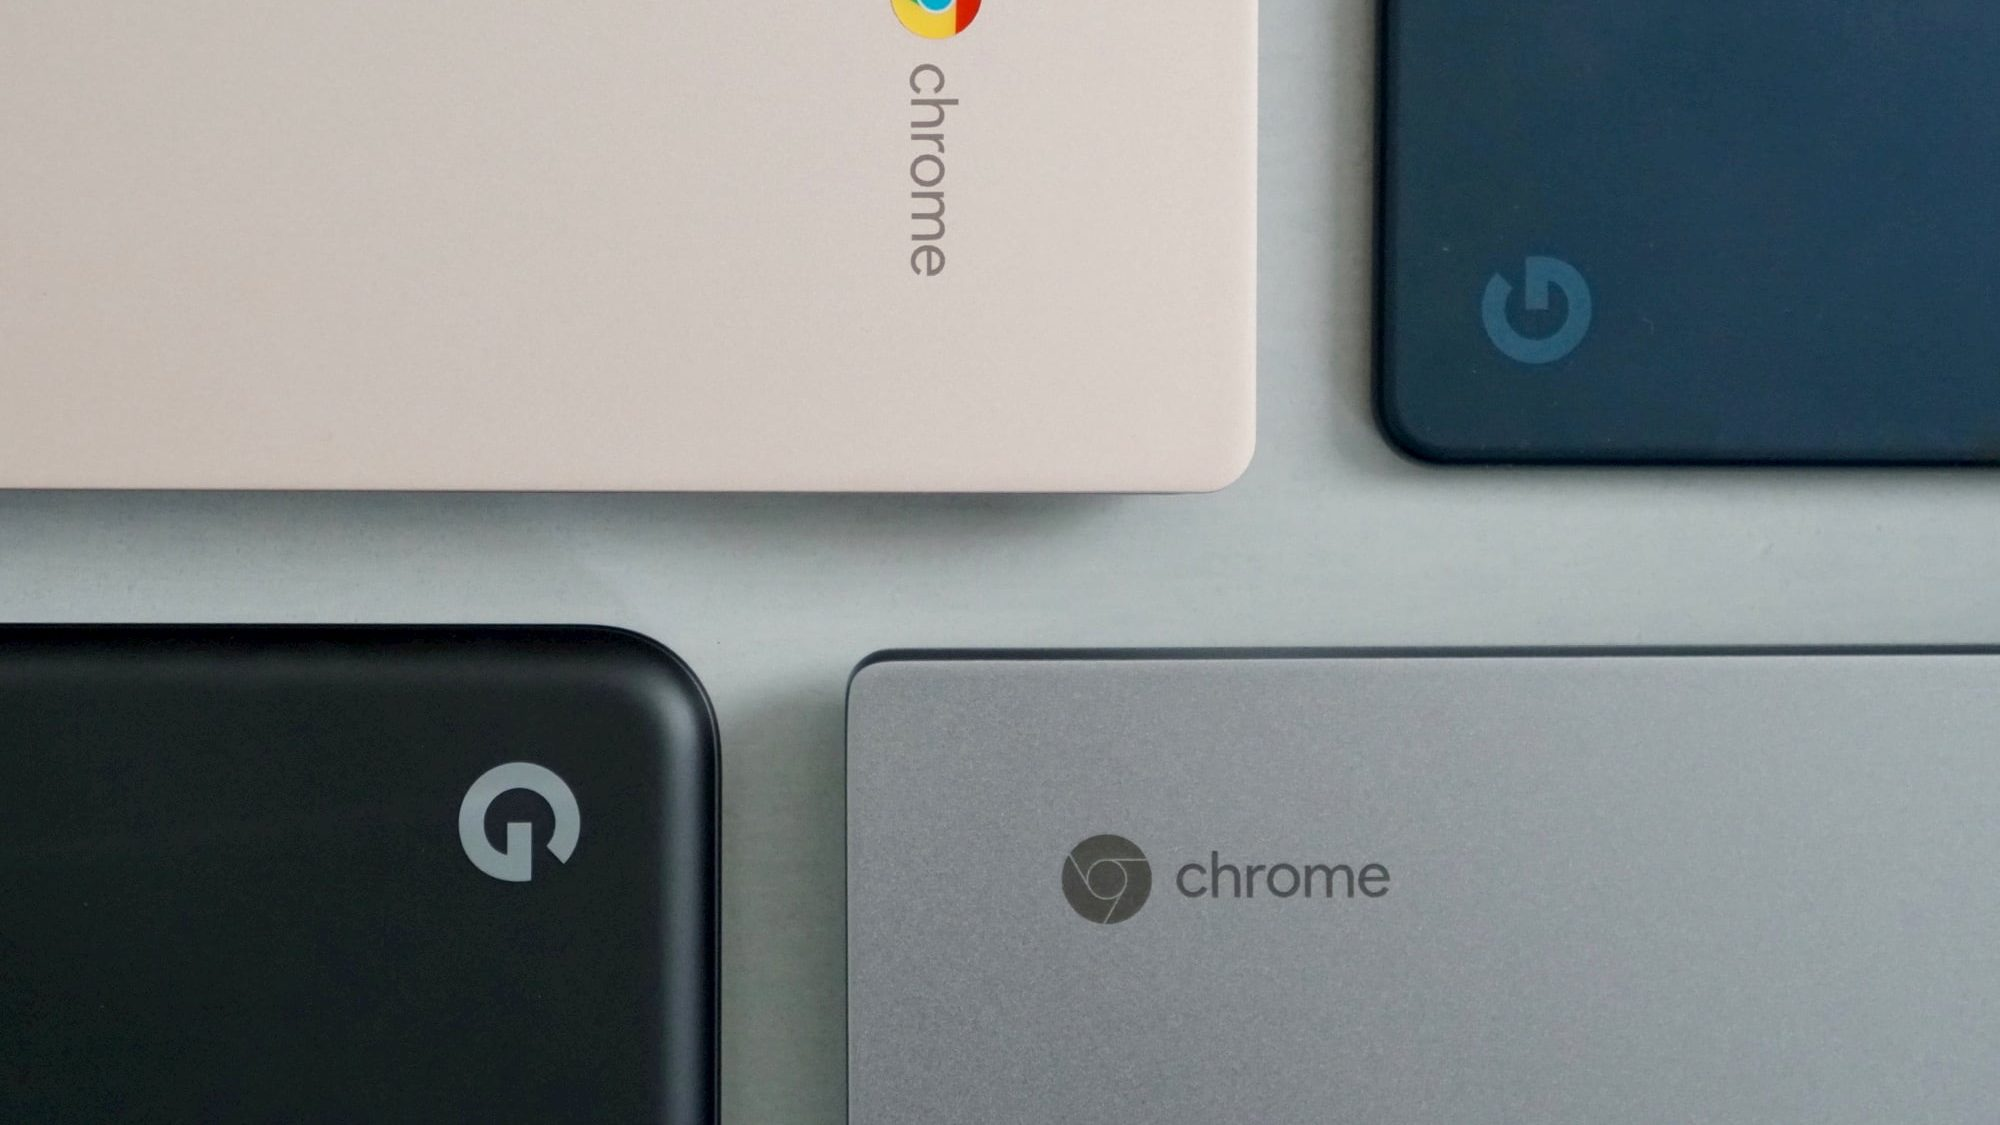 Upcoming Comet Lake Chromebooks 'Dragonair' and 'Dratini' show up in Geekbench with wide range of processors